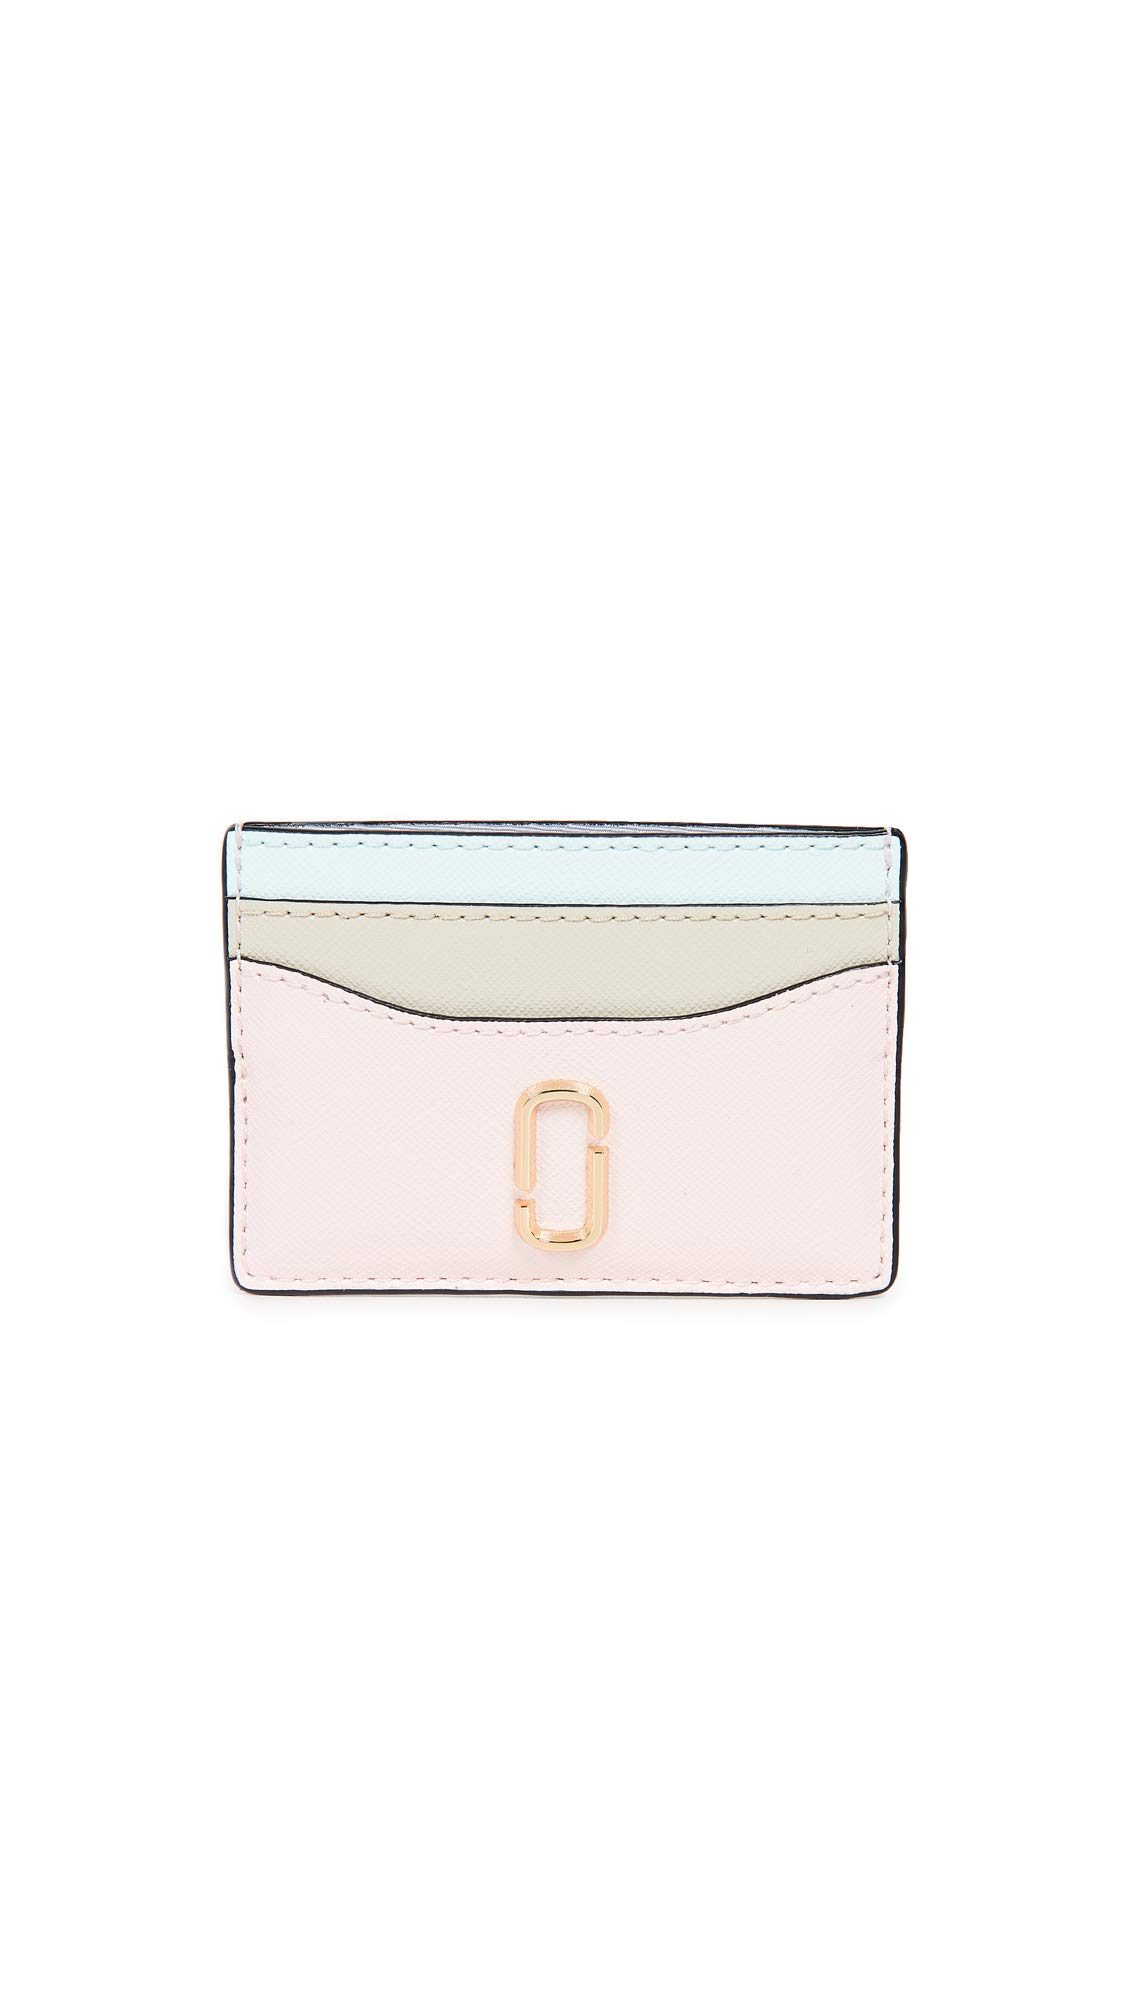 Marc Jacobs Women's Snapshot Card Case, Blush Multi, One Size